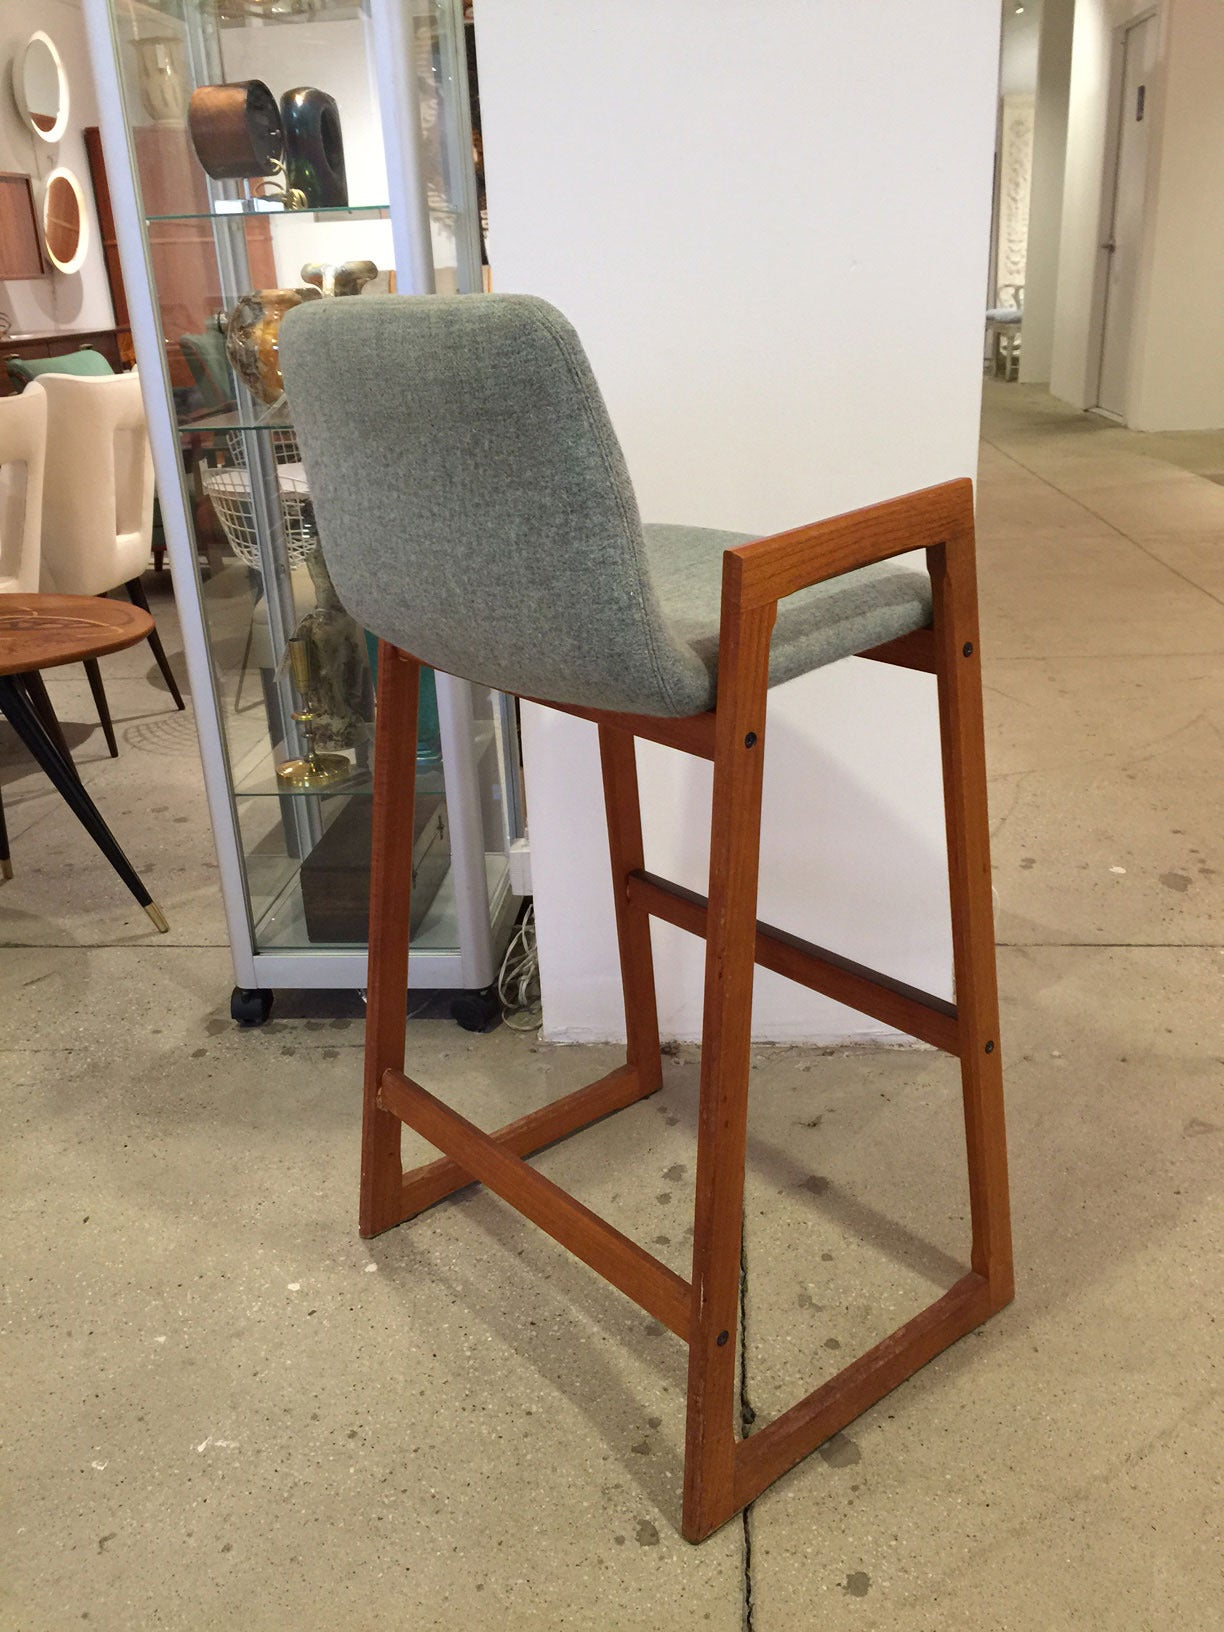 Vintage Danish Teak Bar Stool with Arms in COM (6 Available) In Excellent Condition For Sale In New York, NY